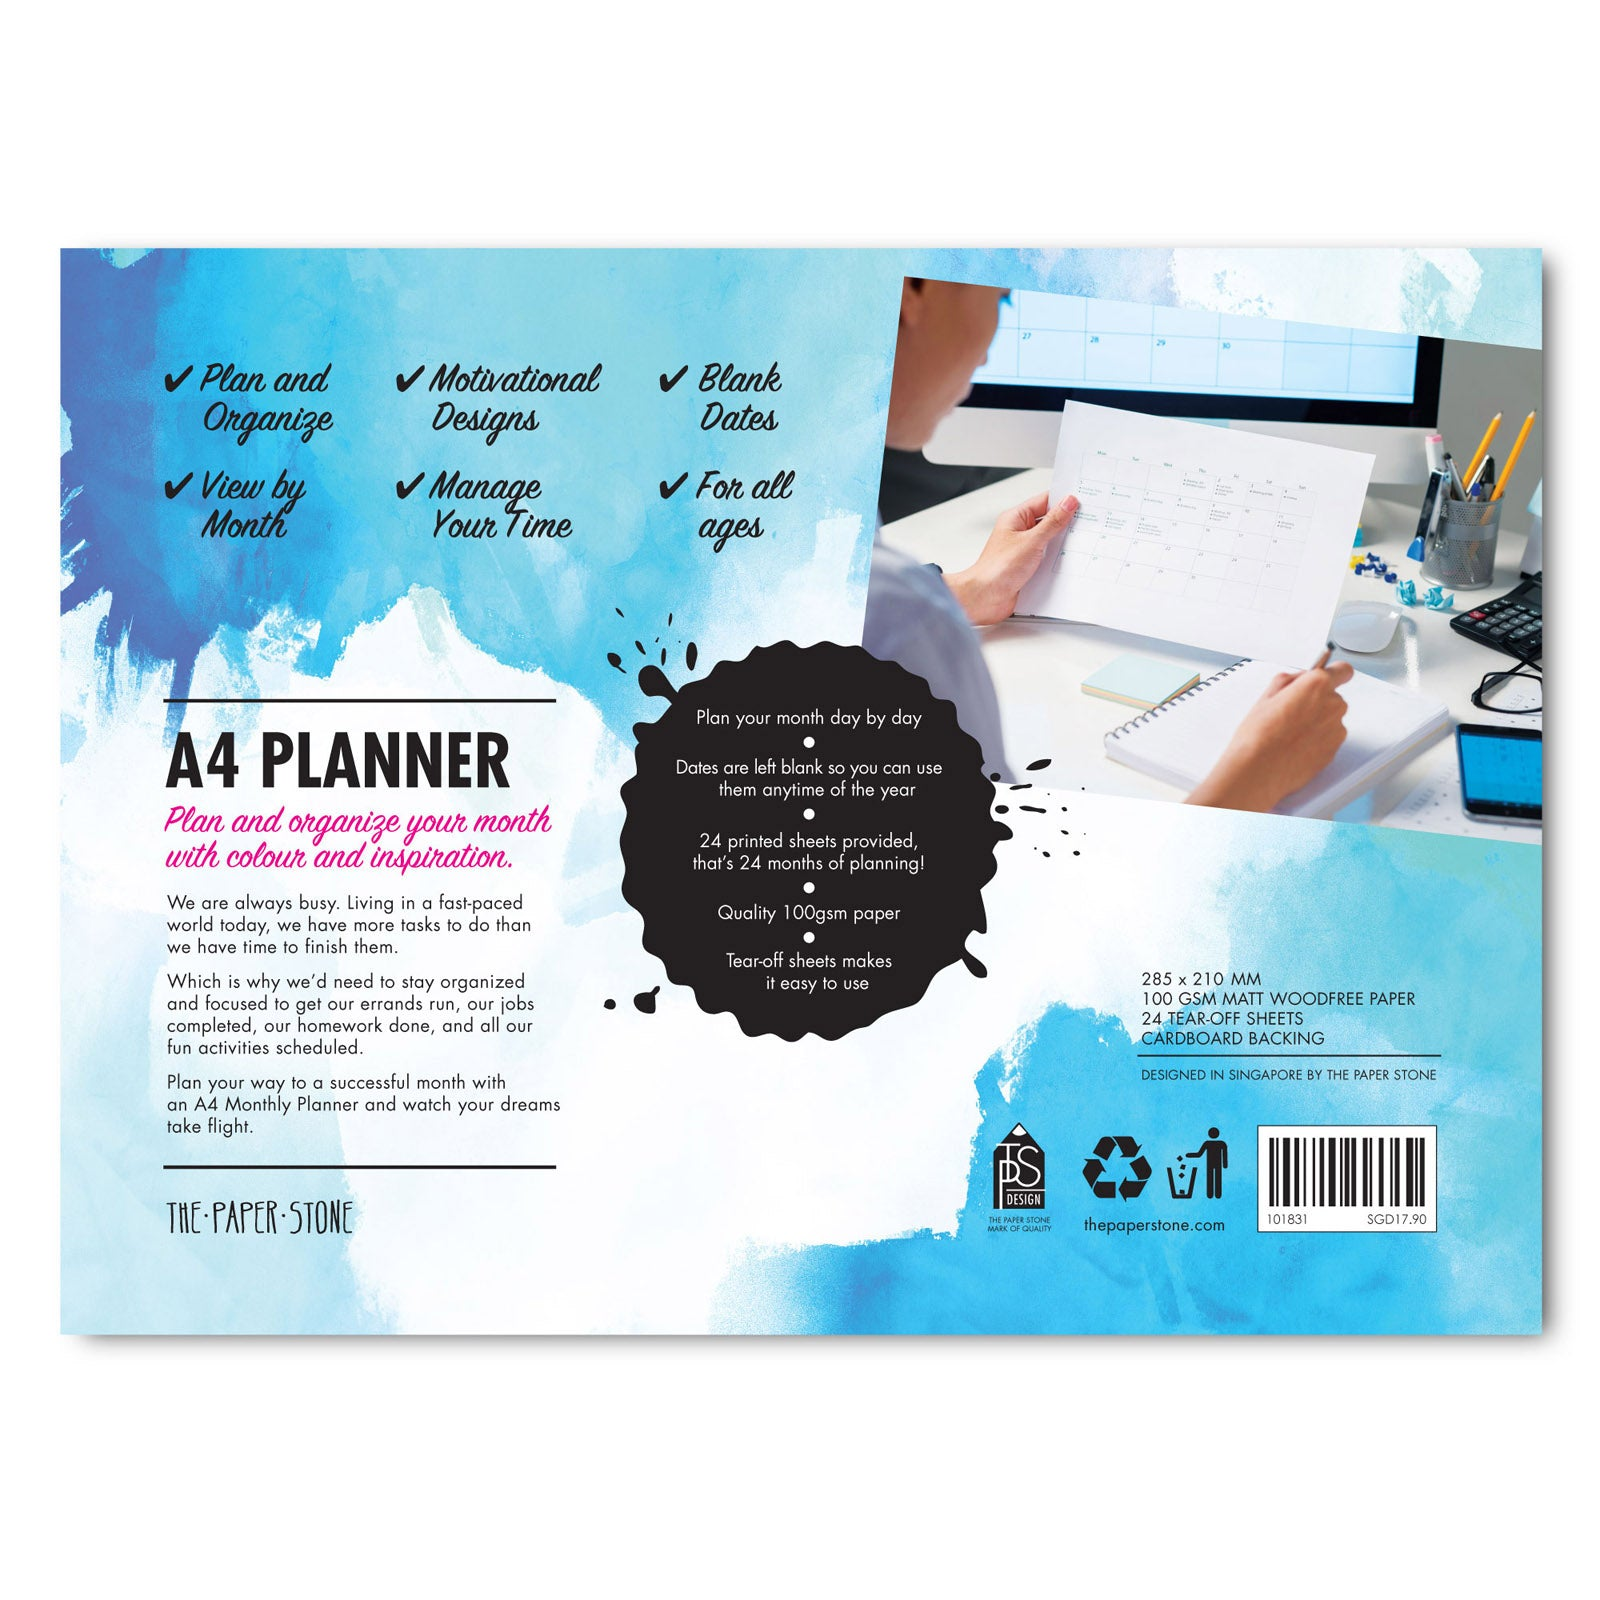 A4 Planner - Make Today Marble